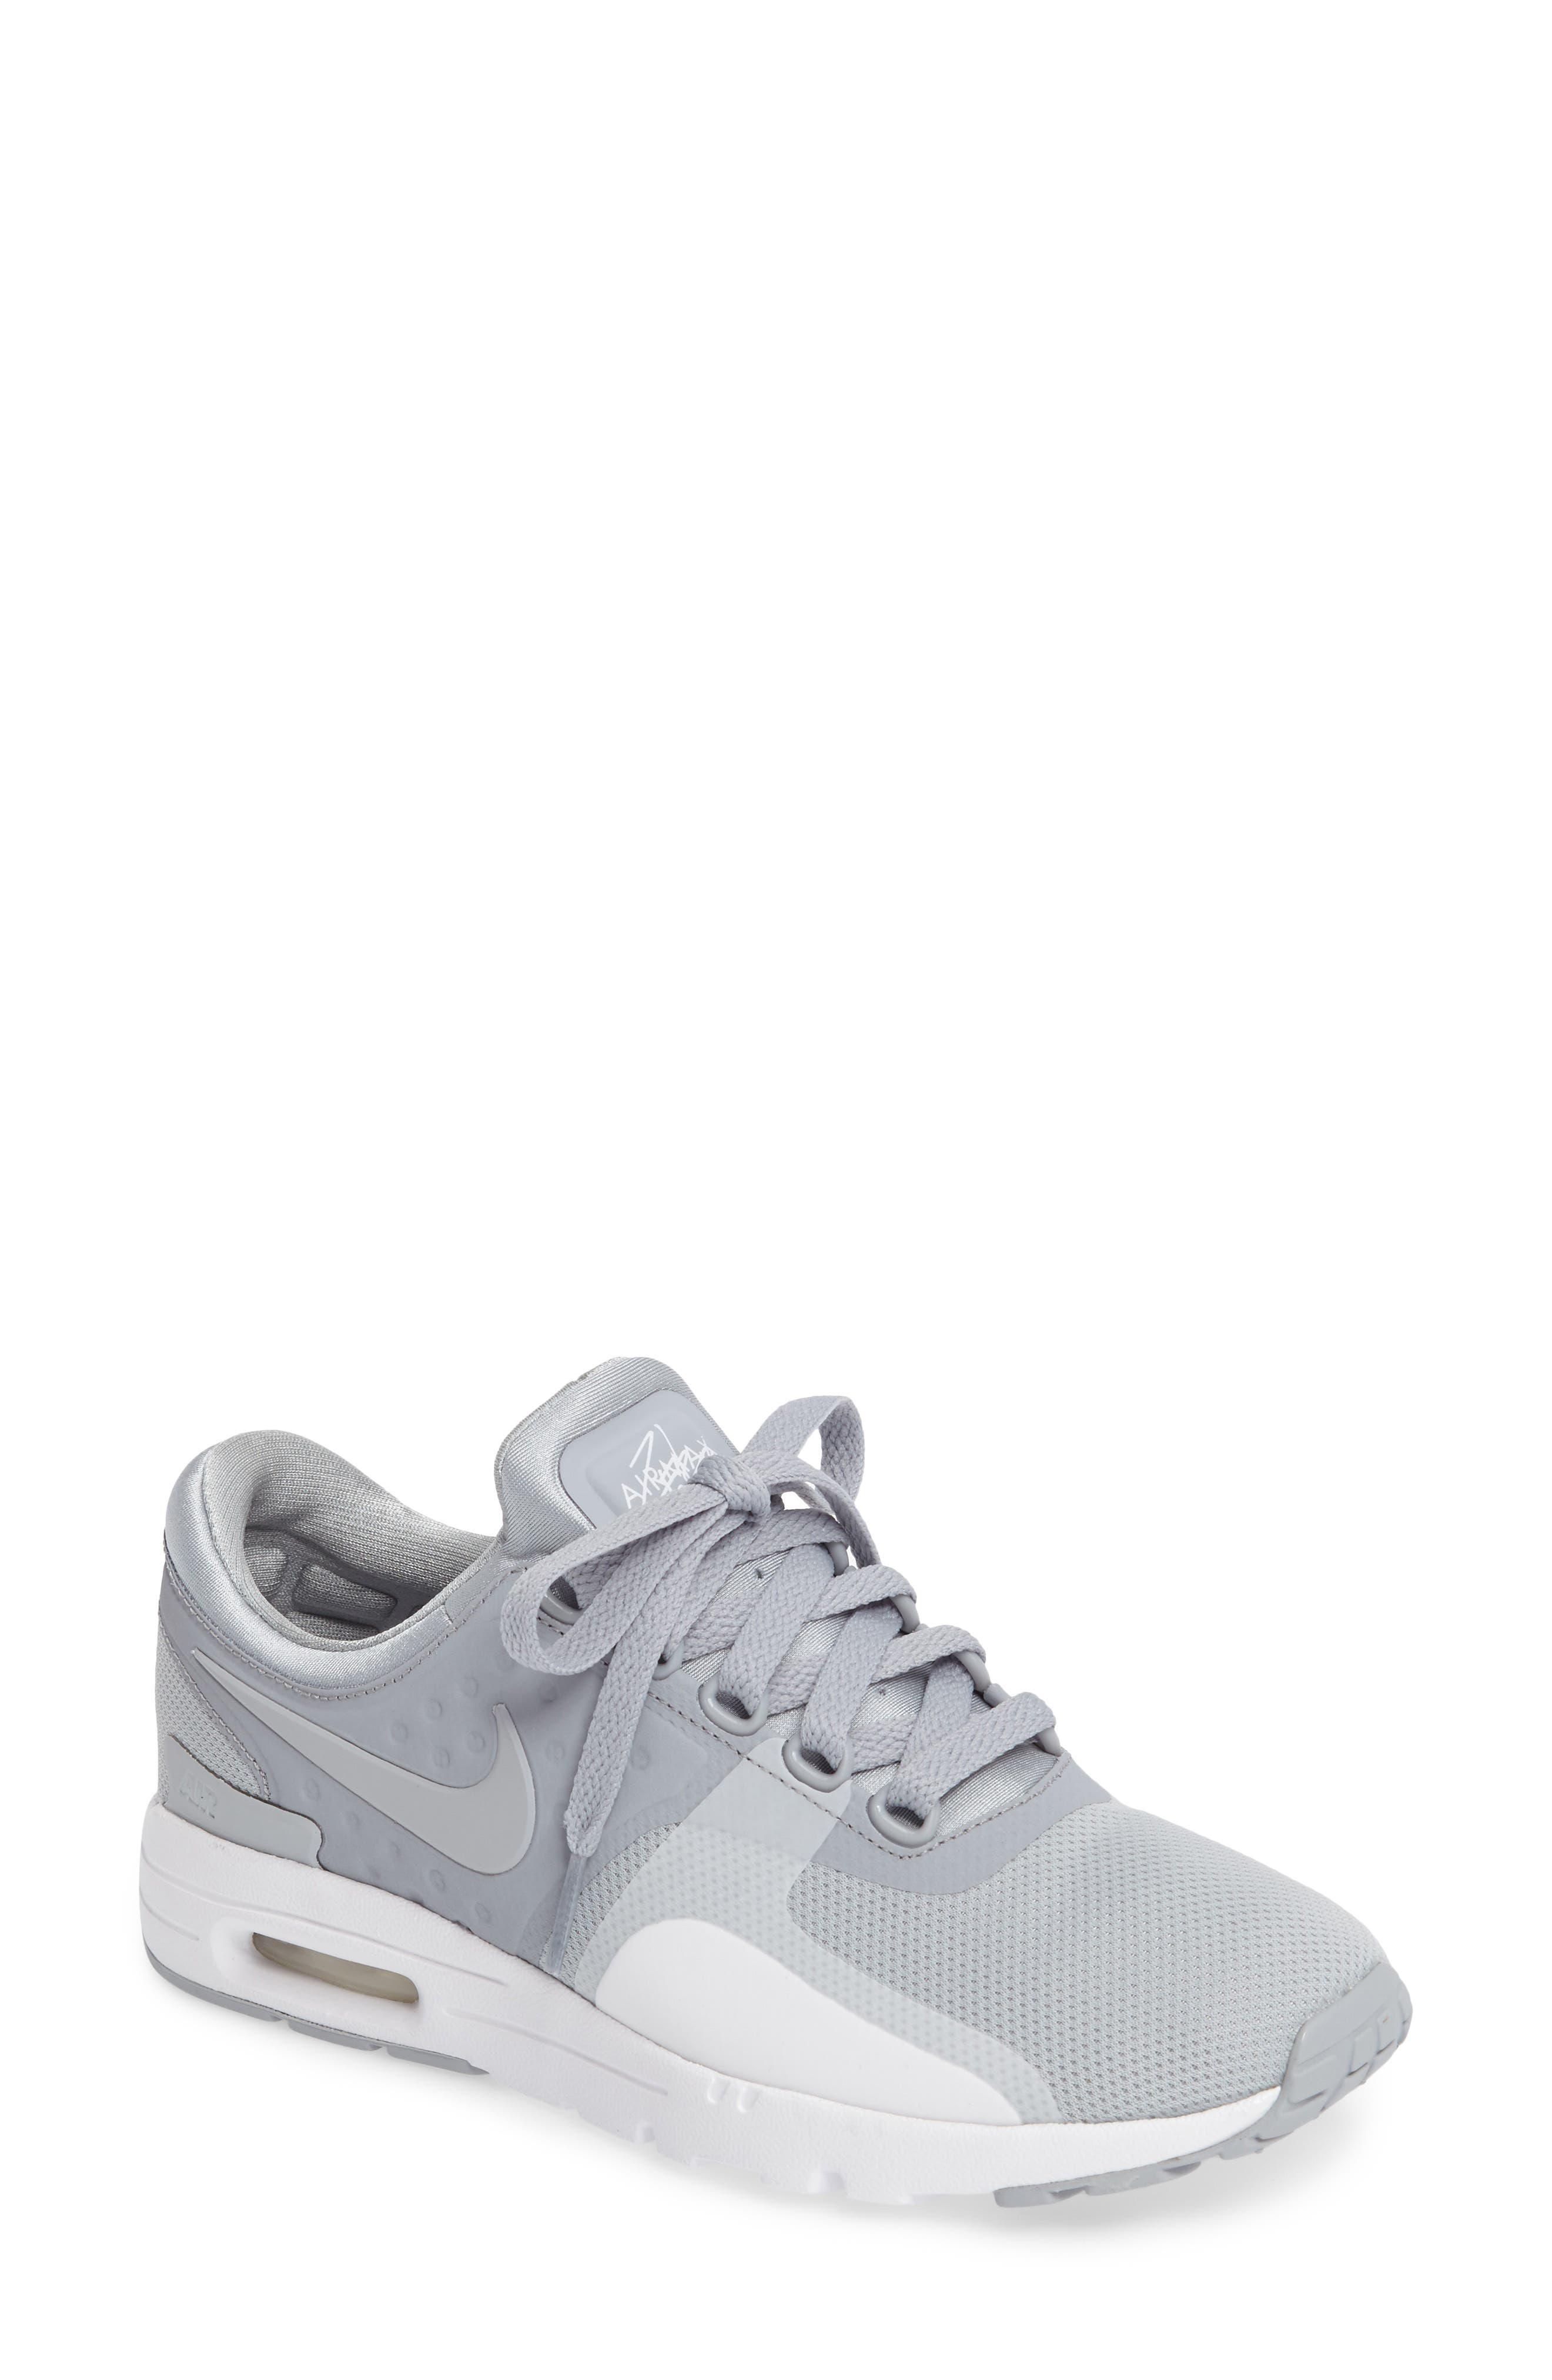 Air Max Zero Sneaker,                         Main,                         color, Wolf Grey/ Wolf Grey/ White